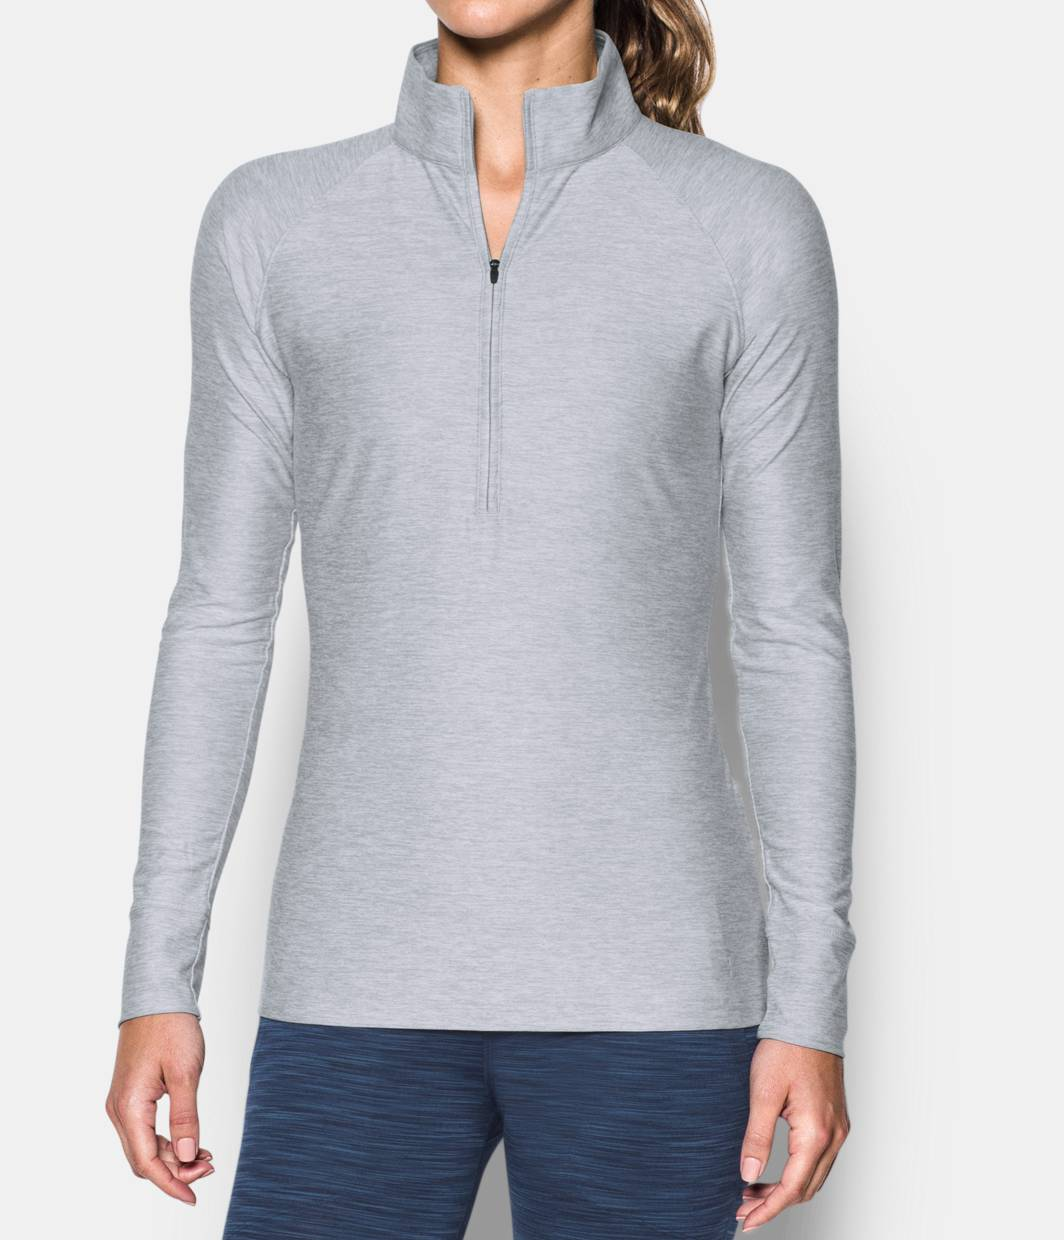 Under Armour Long Sleeve Polo Shirts Womens